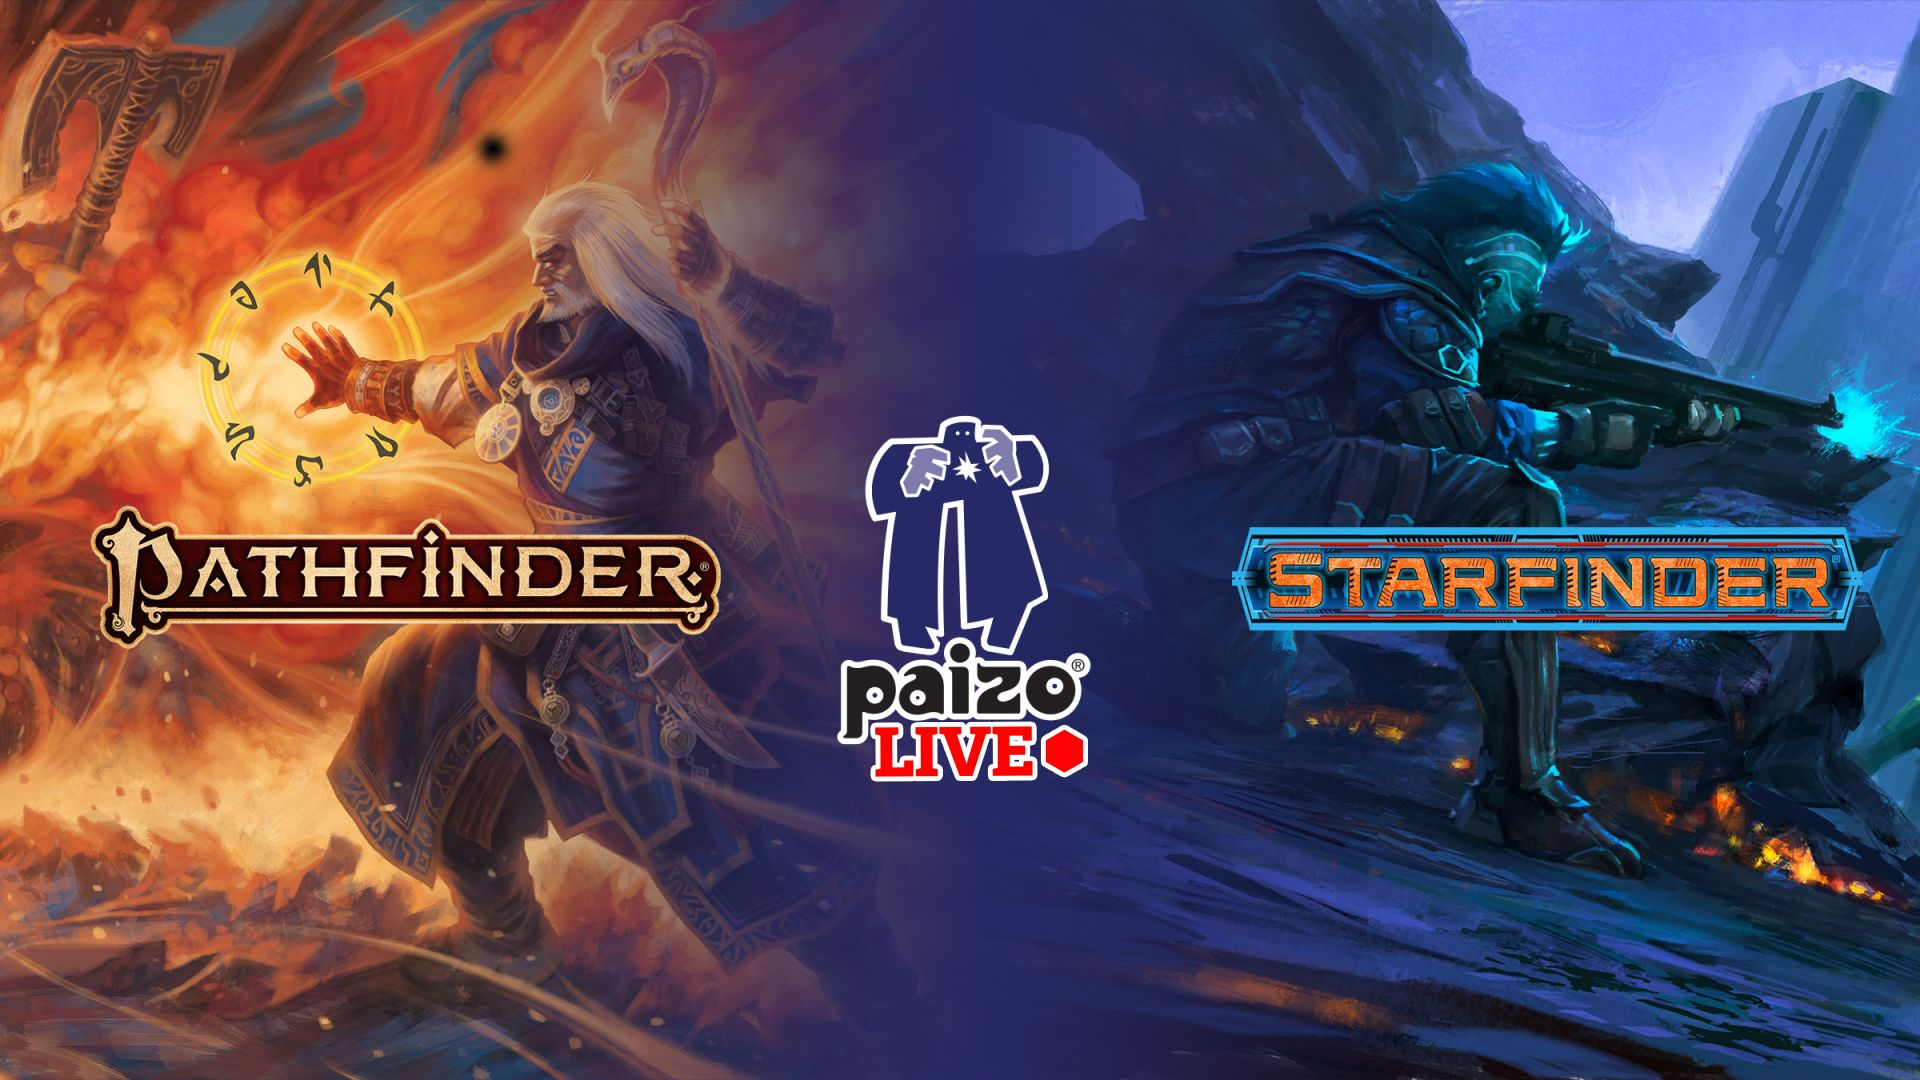 A meshed image of Pathfinder Iconic Ezren the wizard and Starfinder Iseph the operator battling back to back with the Pathfinder, Paizo, and Starfinder logos over the top